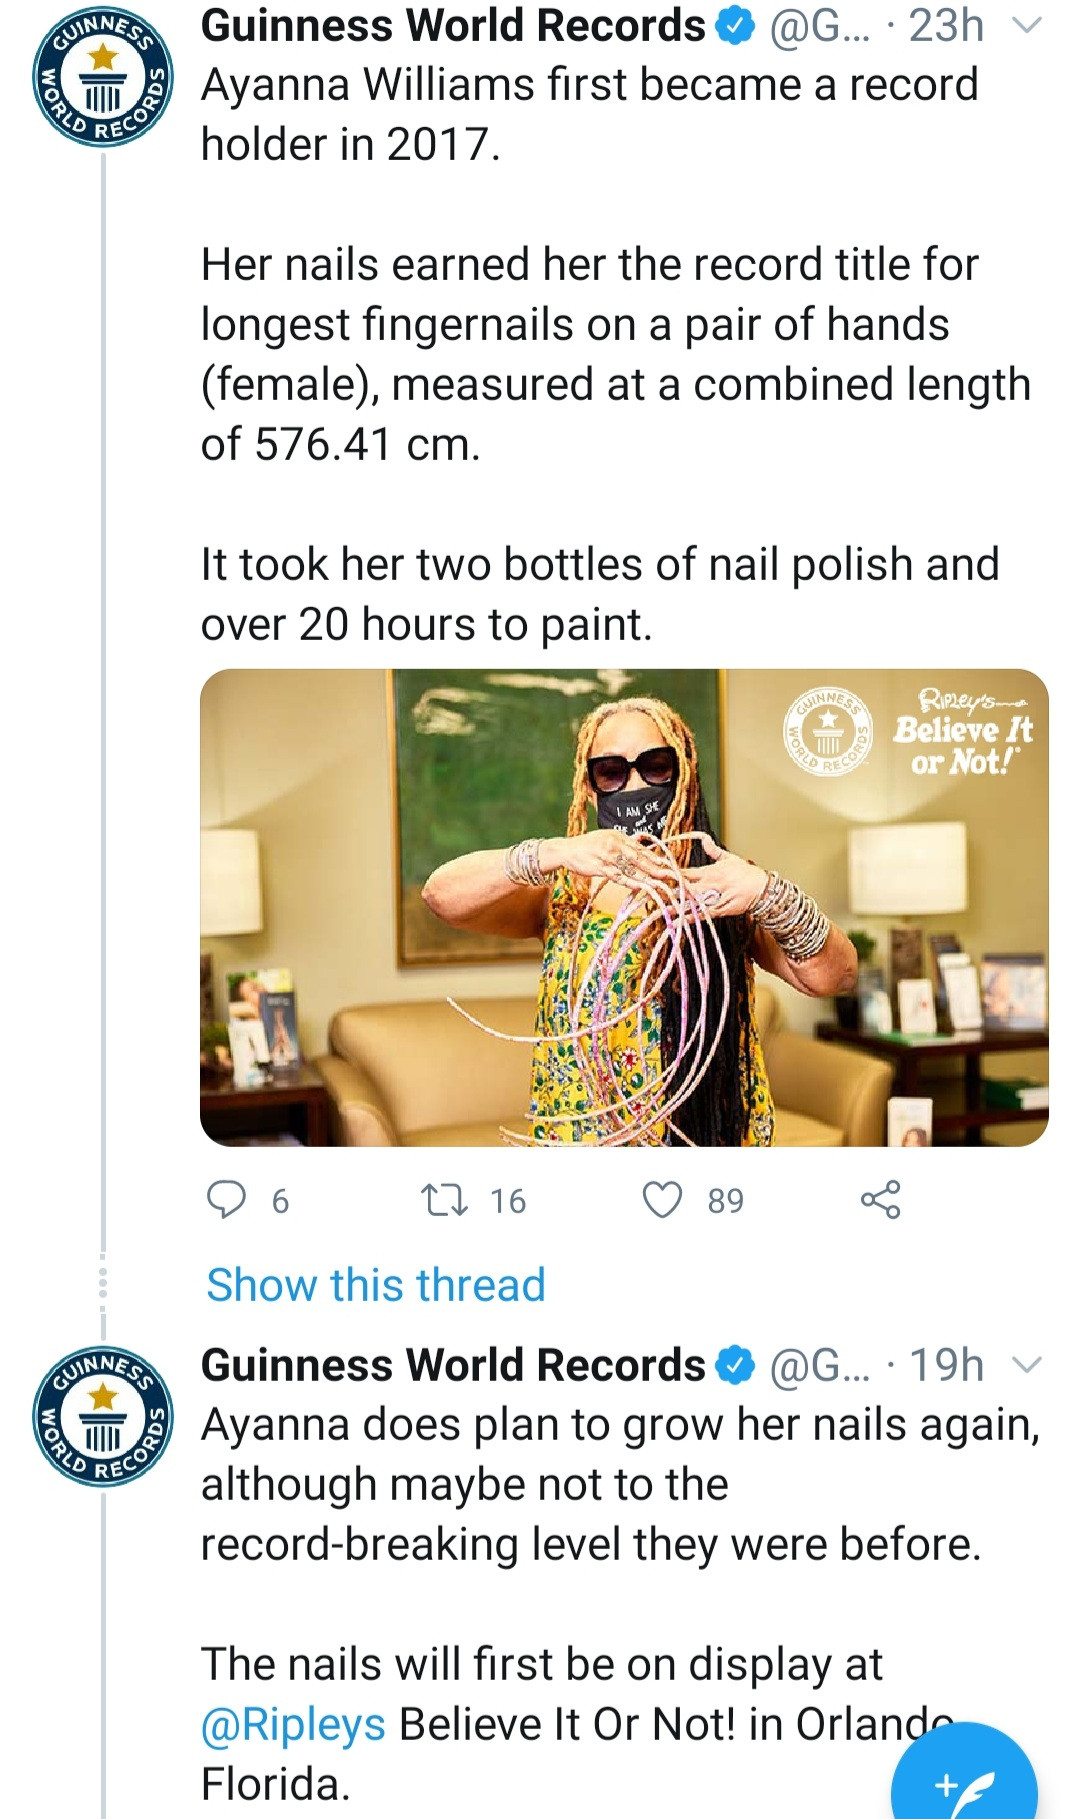 Woman with Guiness World Record for longest fingernails cuts them after nearly 30 years